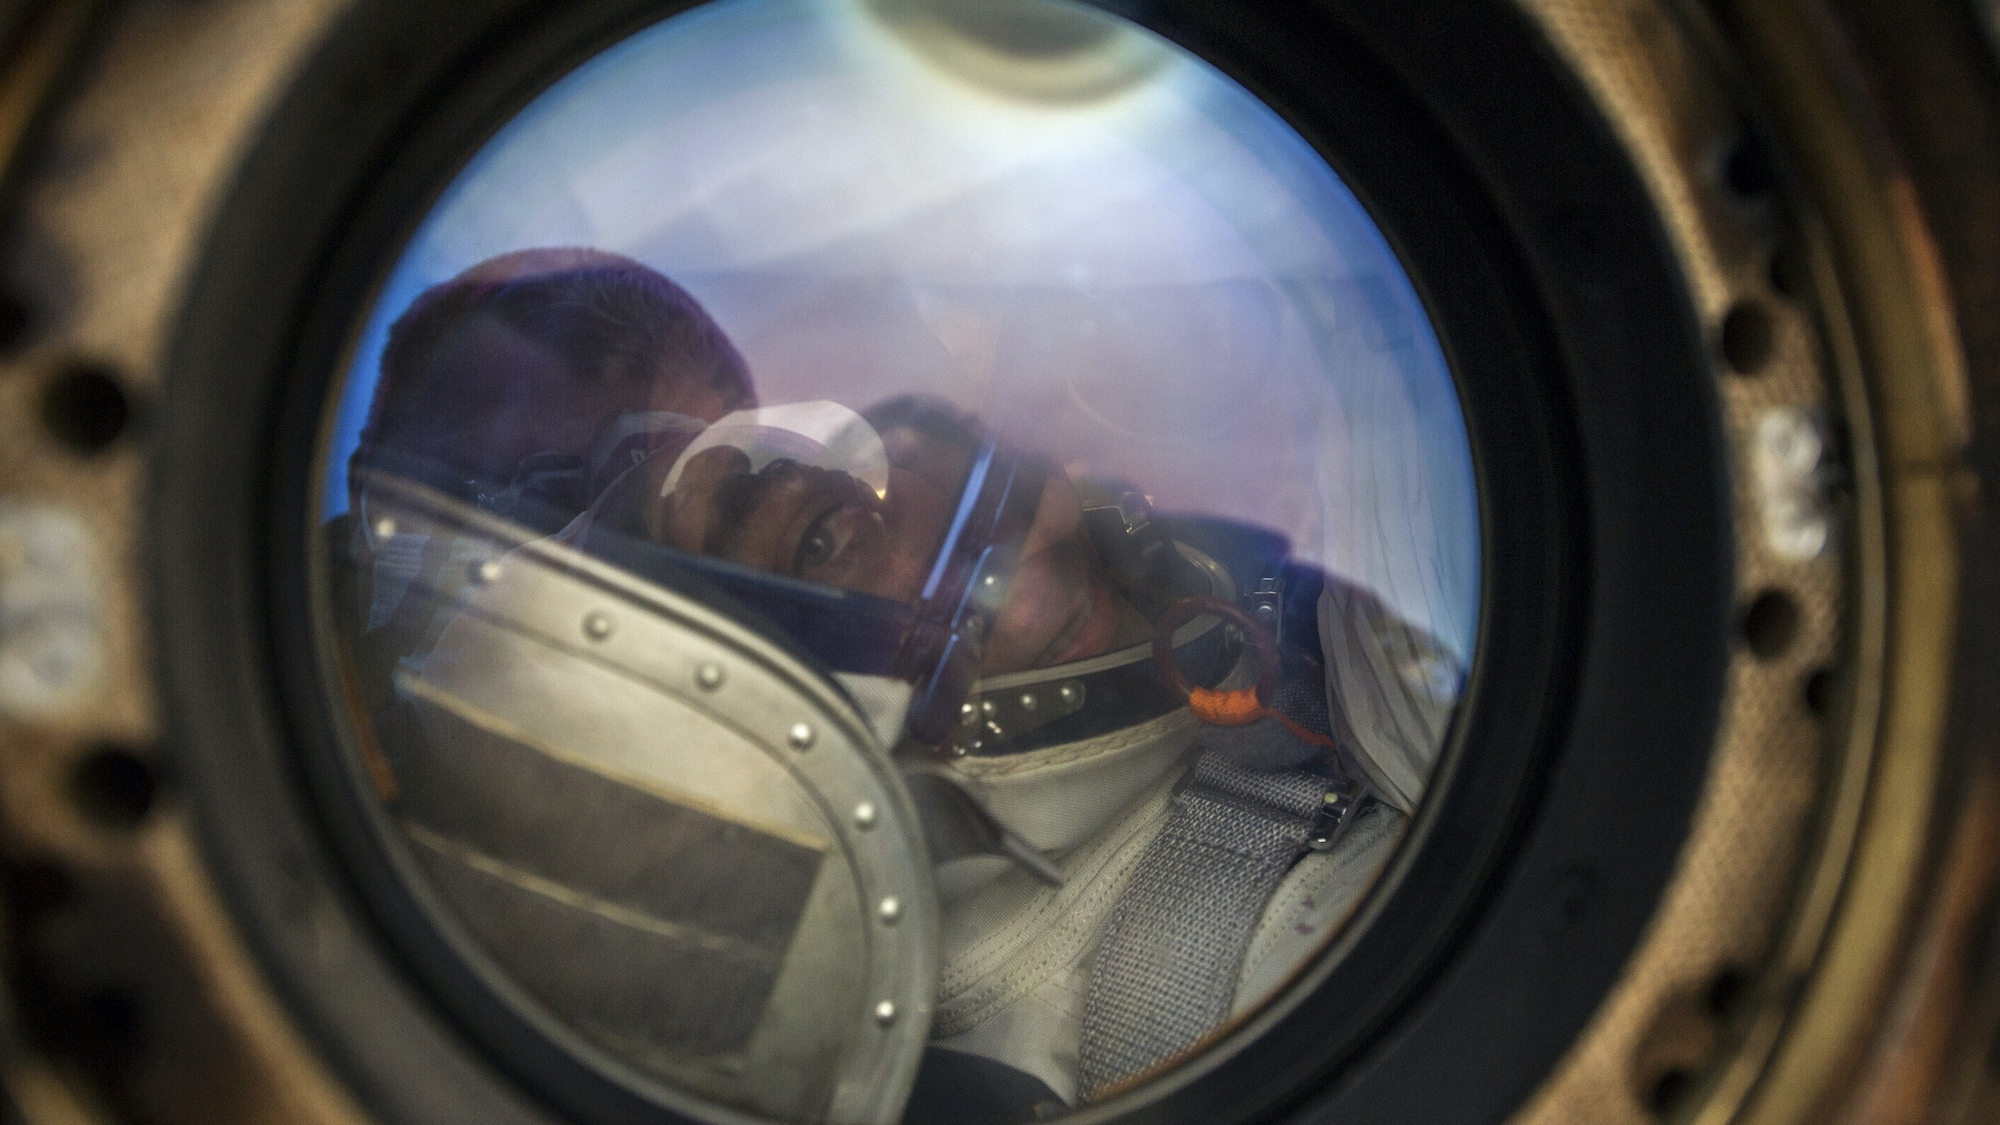 AMONG THE STARS - Expedition 63 NASA astronaut Chris Cassidy smiles from inside the Soyuz MS-16 spacecraft just minutes after he and Roscosmos cosmonauts Ivan Vagner, and Anatoly Ivanishin, landed in a remote area near the town of Zhezkazgan, Kazakhstan on Thursday, October 22, 2020, Kazakh time (Oct. 21 Eastern time). Cassidy, Ivanishin and Vagner returned after 196 days in space having served as Expedition 62-63 crew members onboard the International Space Station. (NASA/GCTC/Denis Derevtsov) CHRIS CASSIDY